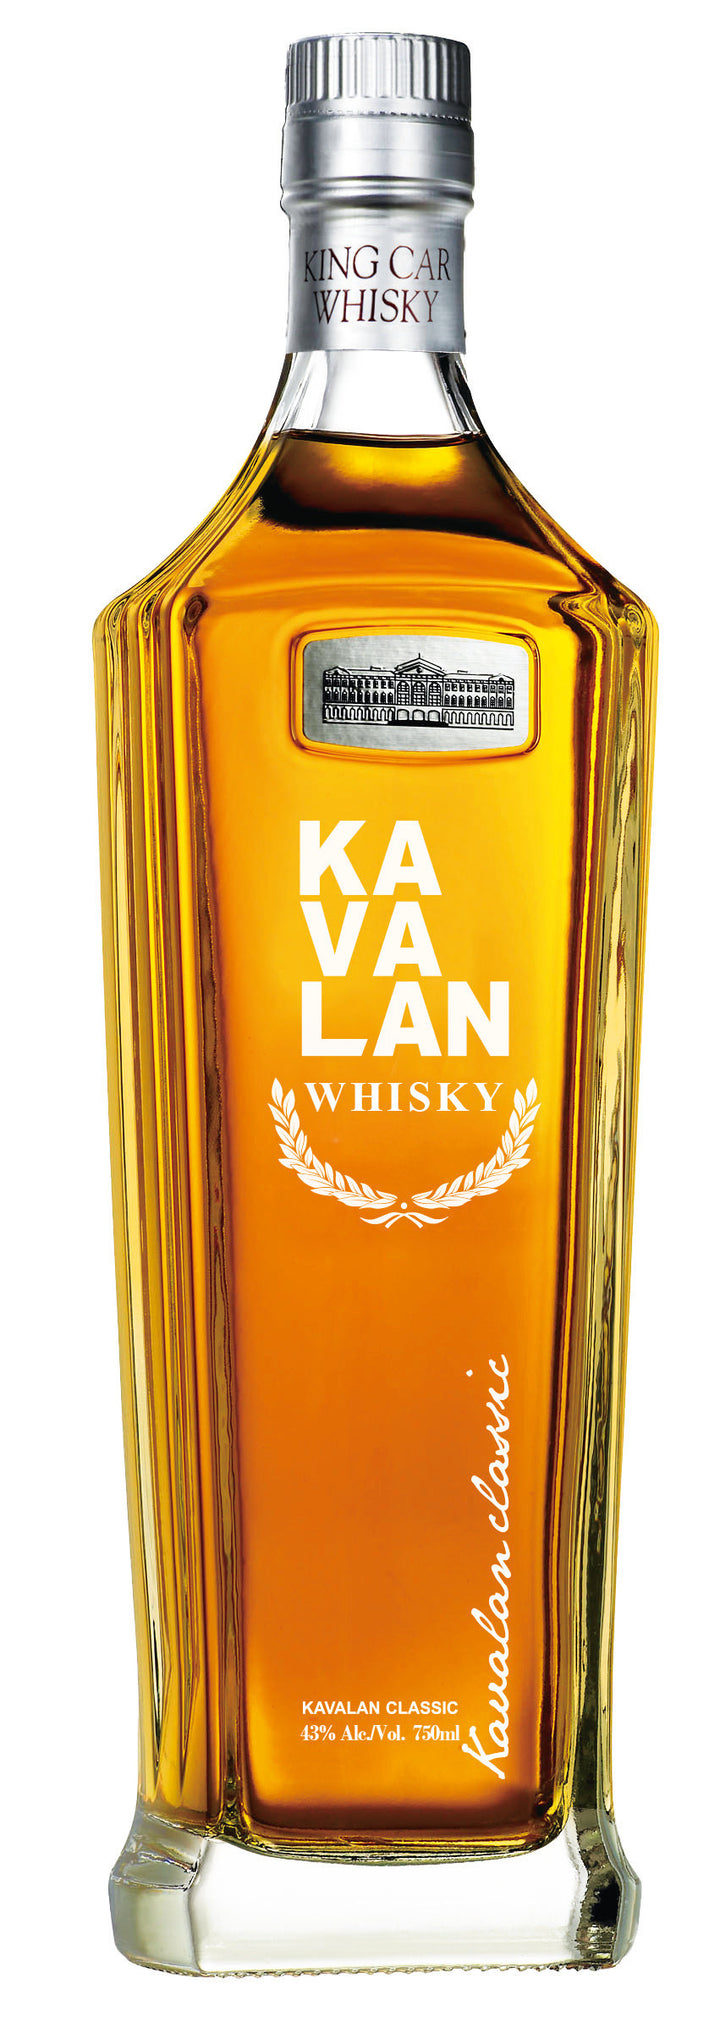 Kavalan Single Malt Whisky (Classic), Taiwan, 43%ABV (86 Proof)